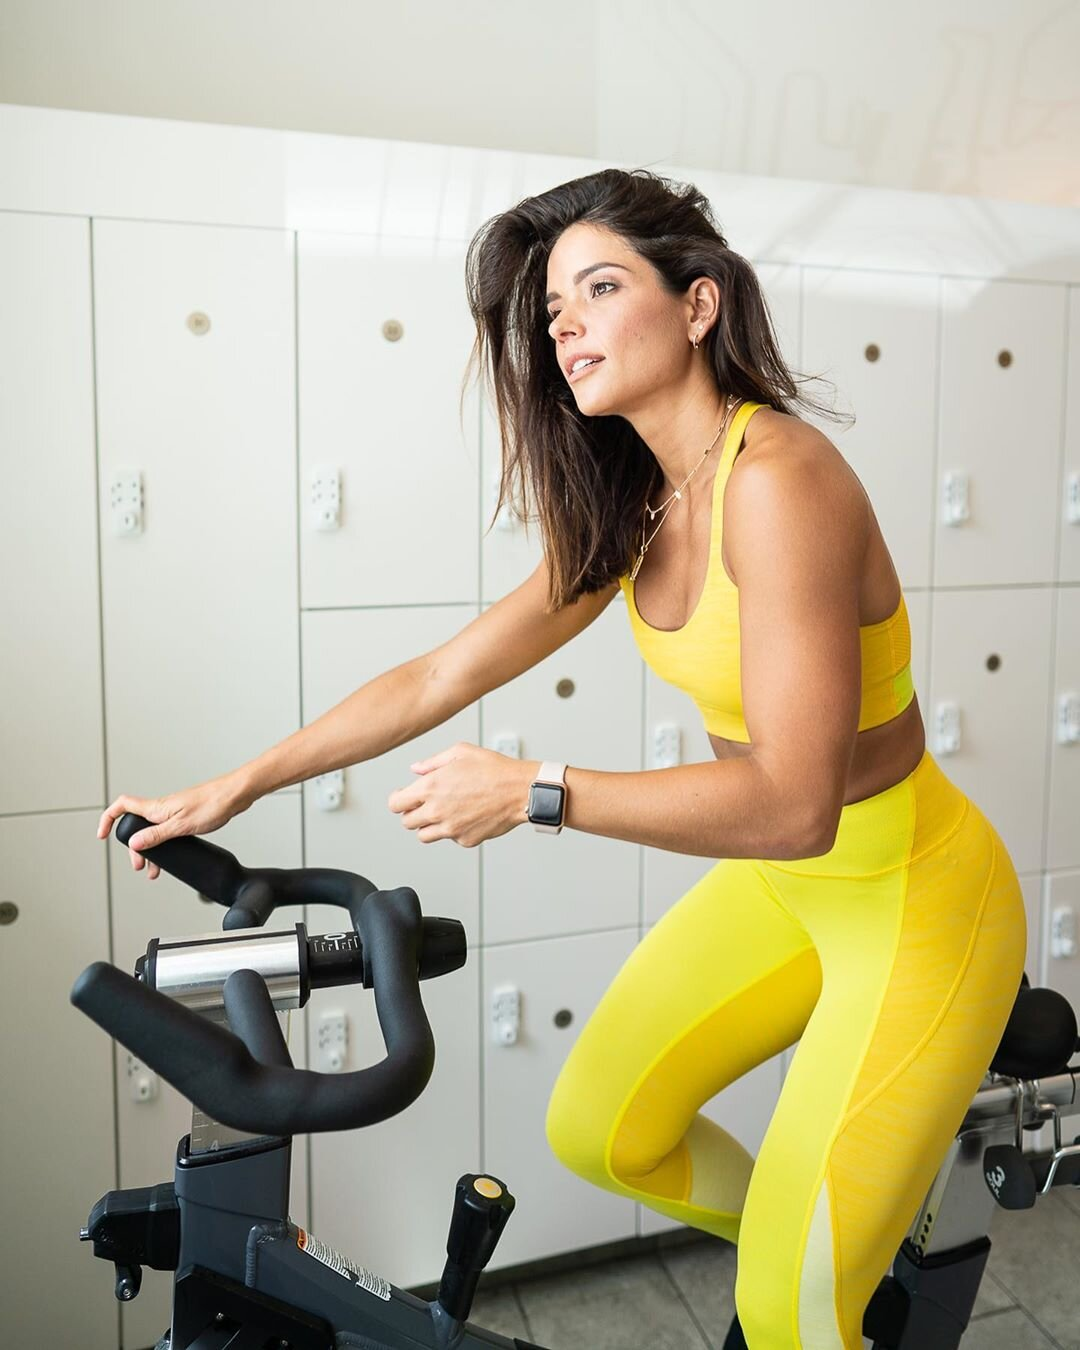 katy leigh soulcycle by weston carls photography.jpg